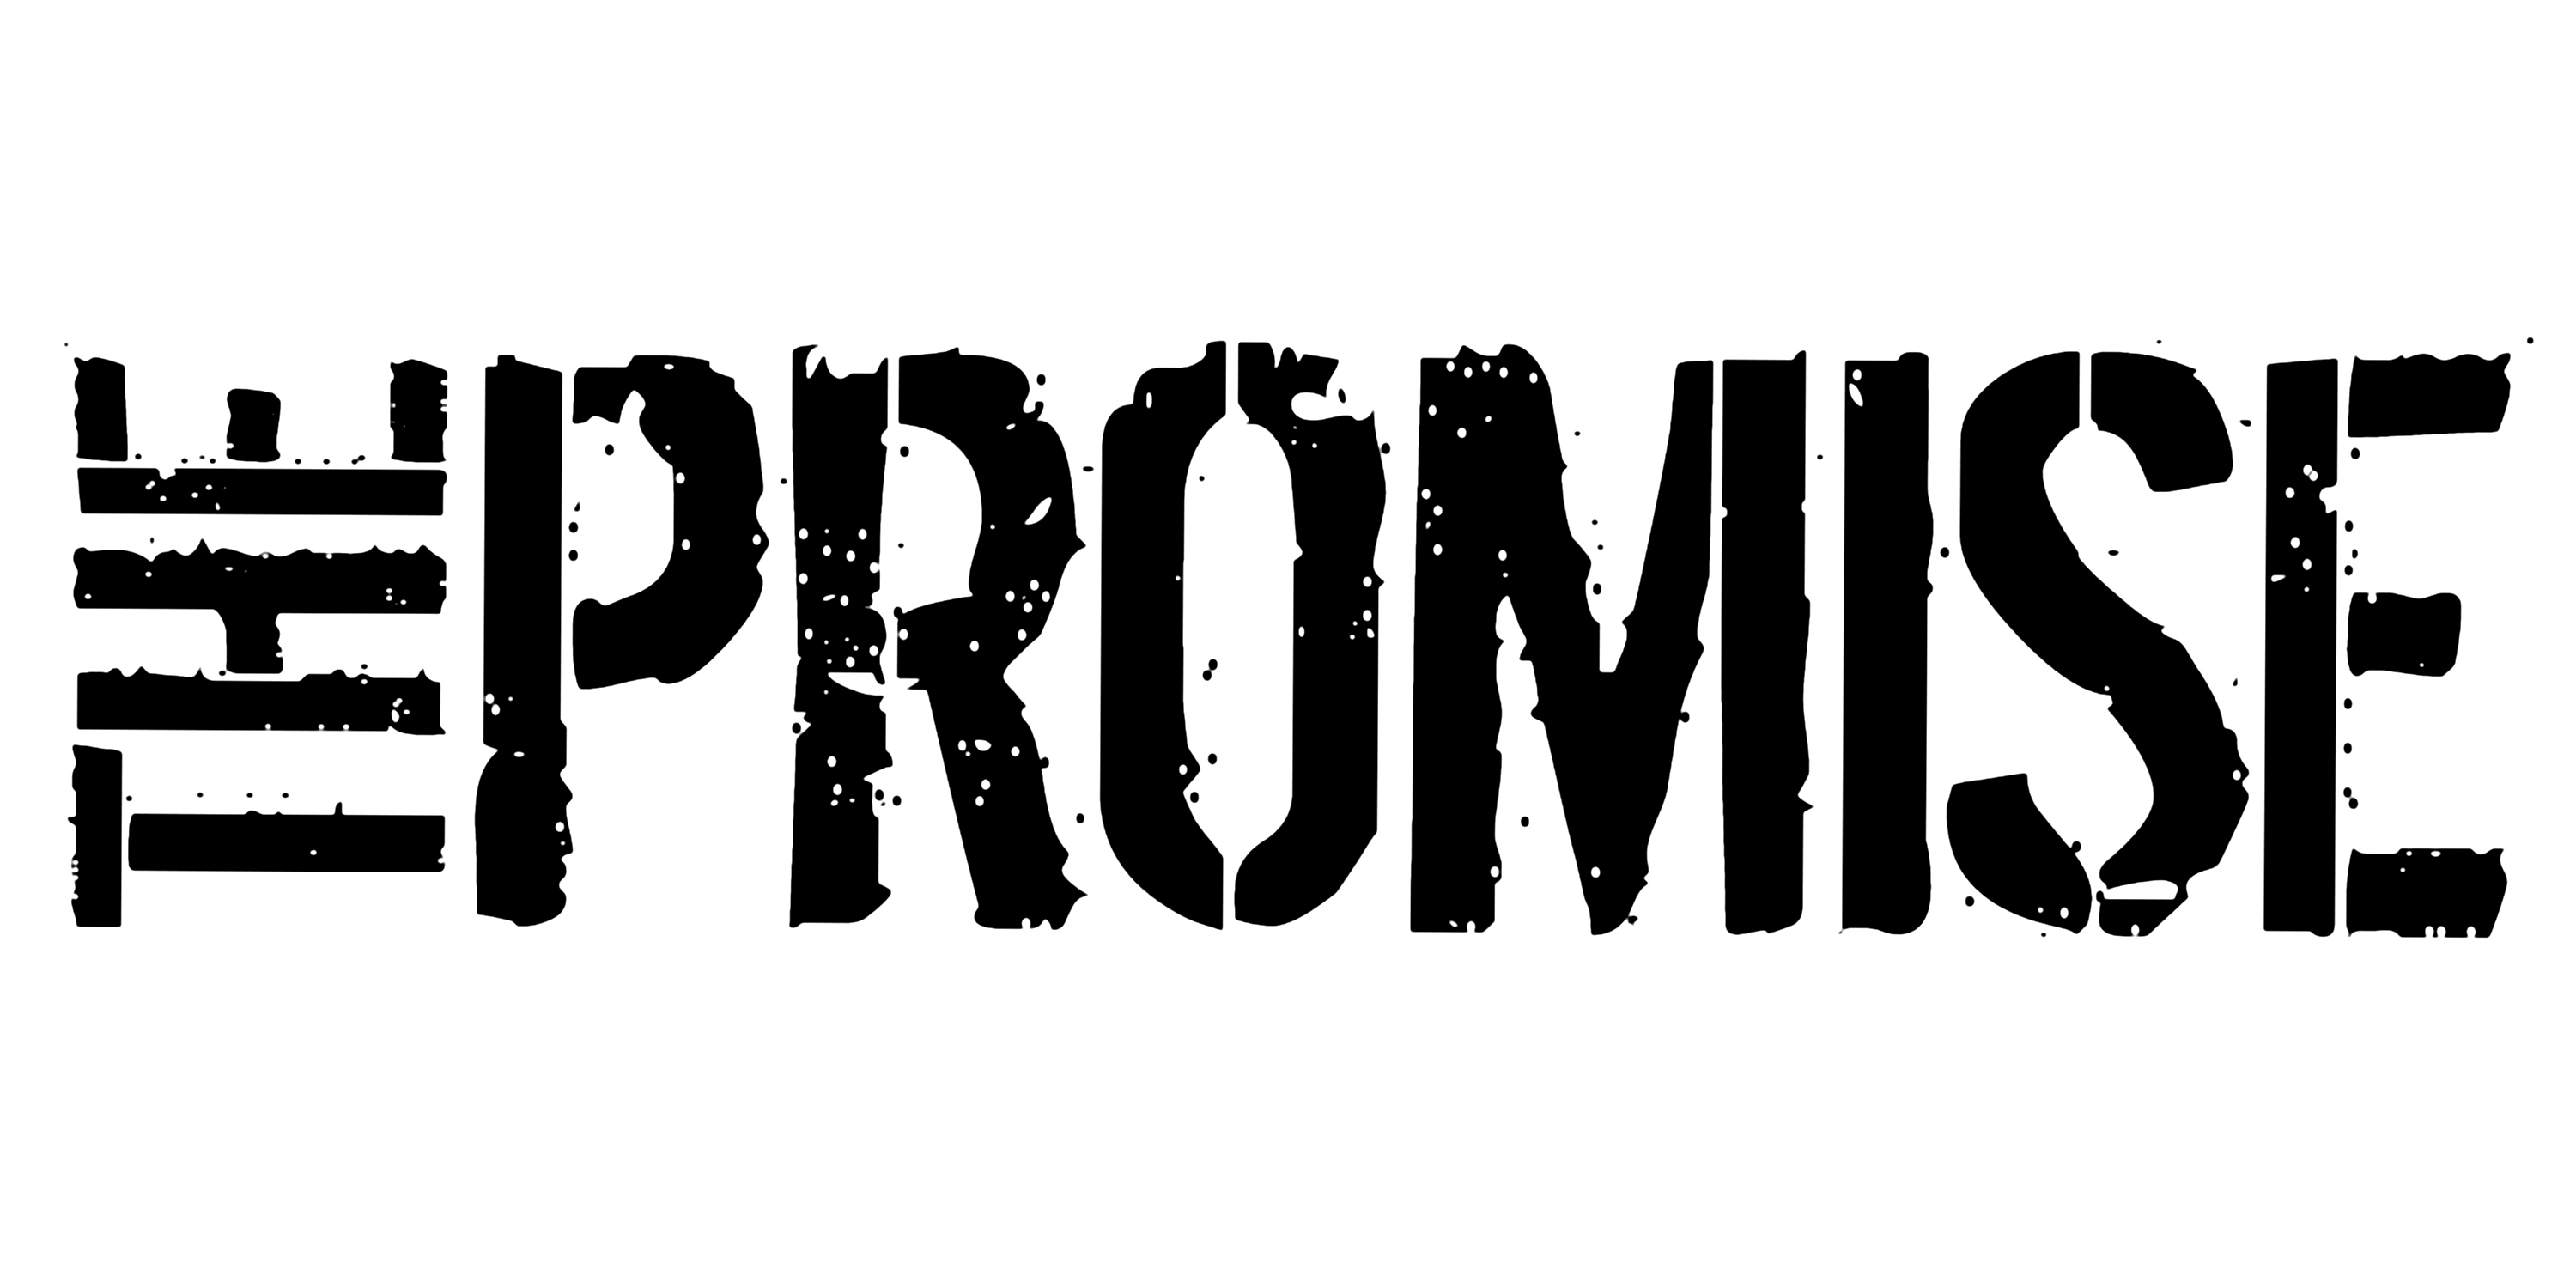 a promise Breaking promises should be the rare exception but it would be naive to say  every promise can be kept here's the honorable way to break a promise.